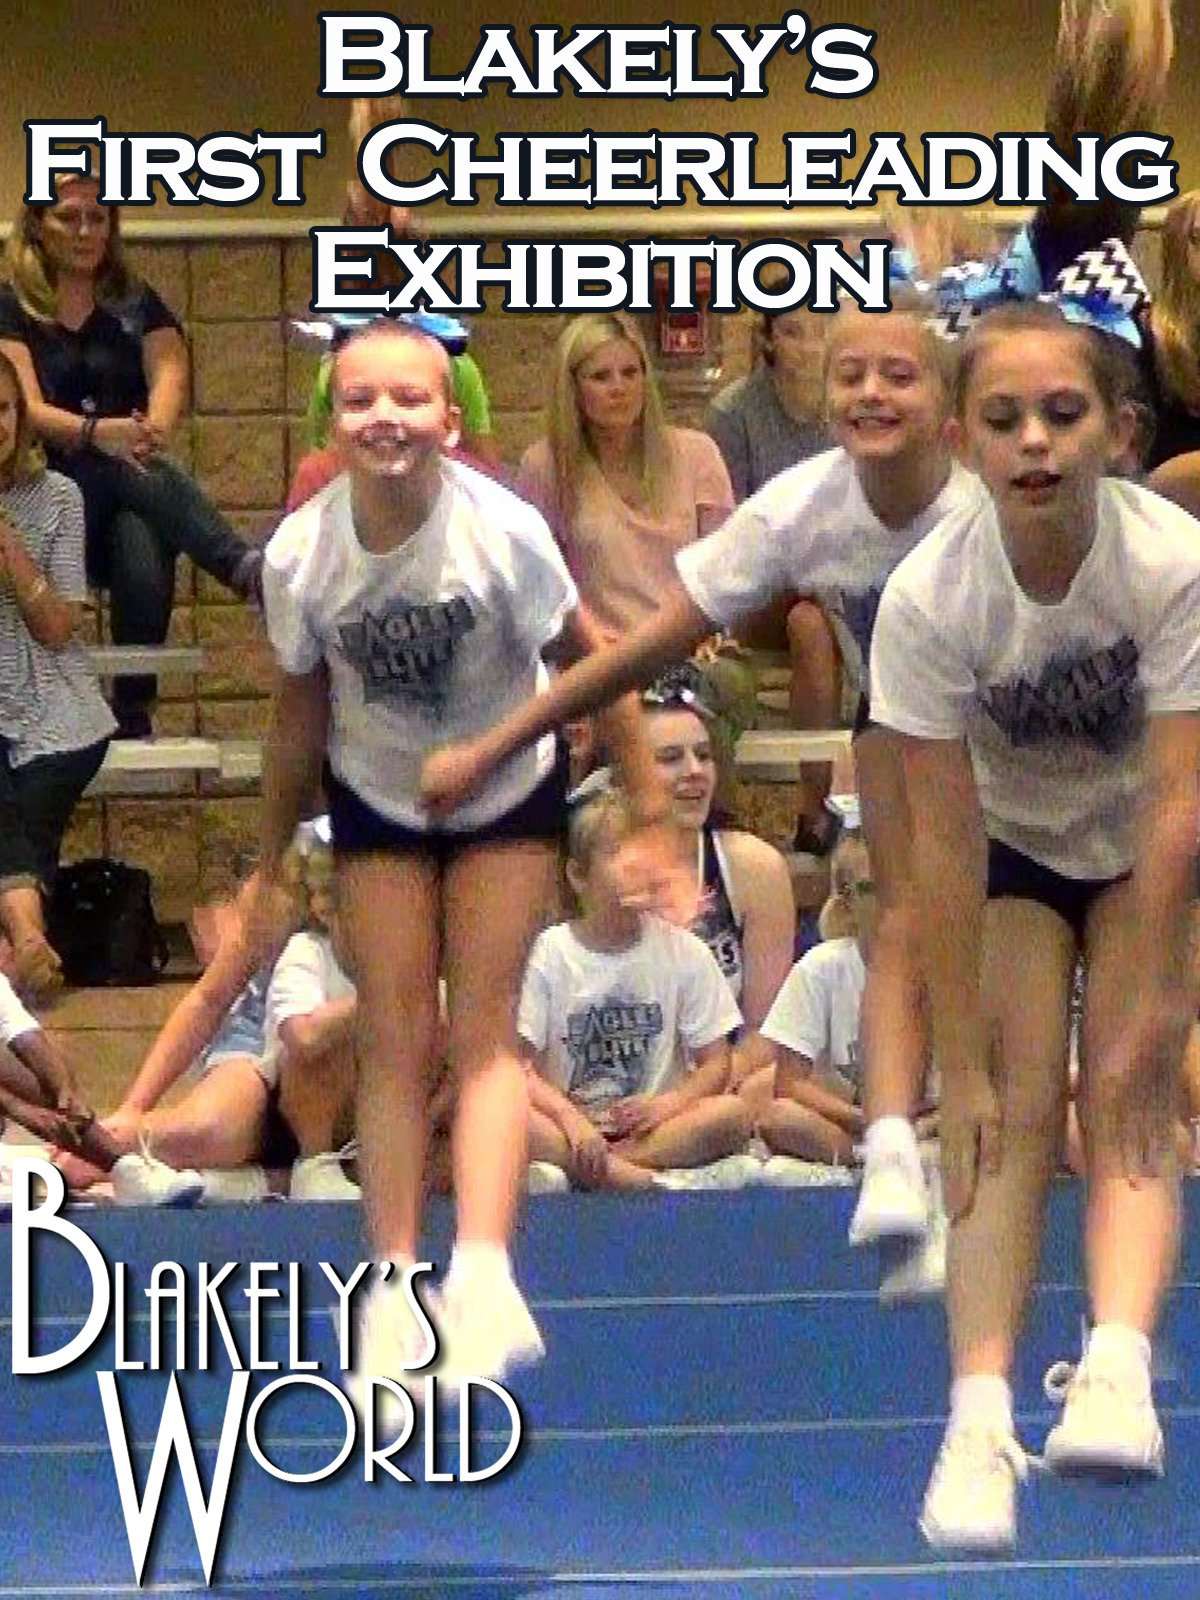 Blakely's First Cheerleading Exhibition